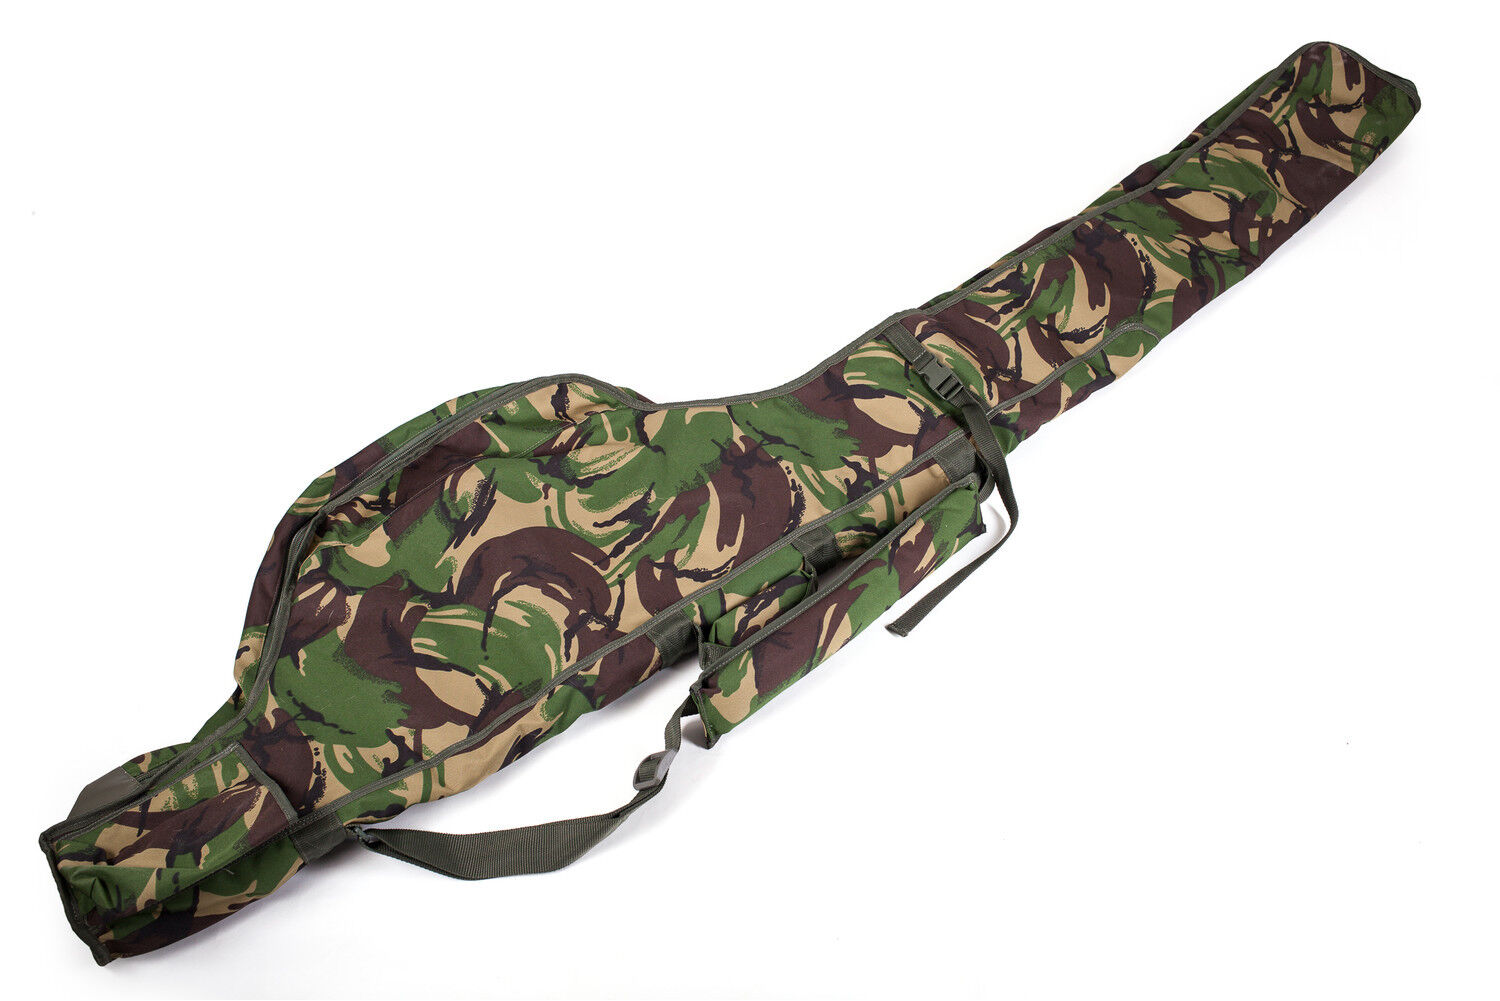 Cotswold Aquarius Trident 13ft 2/3 Carp Fishing Rod Holdall Woodland Camo NEW